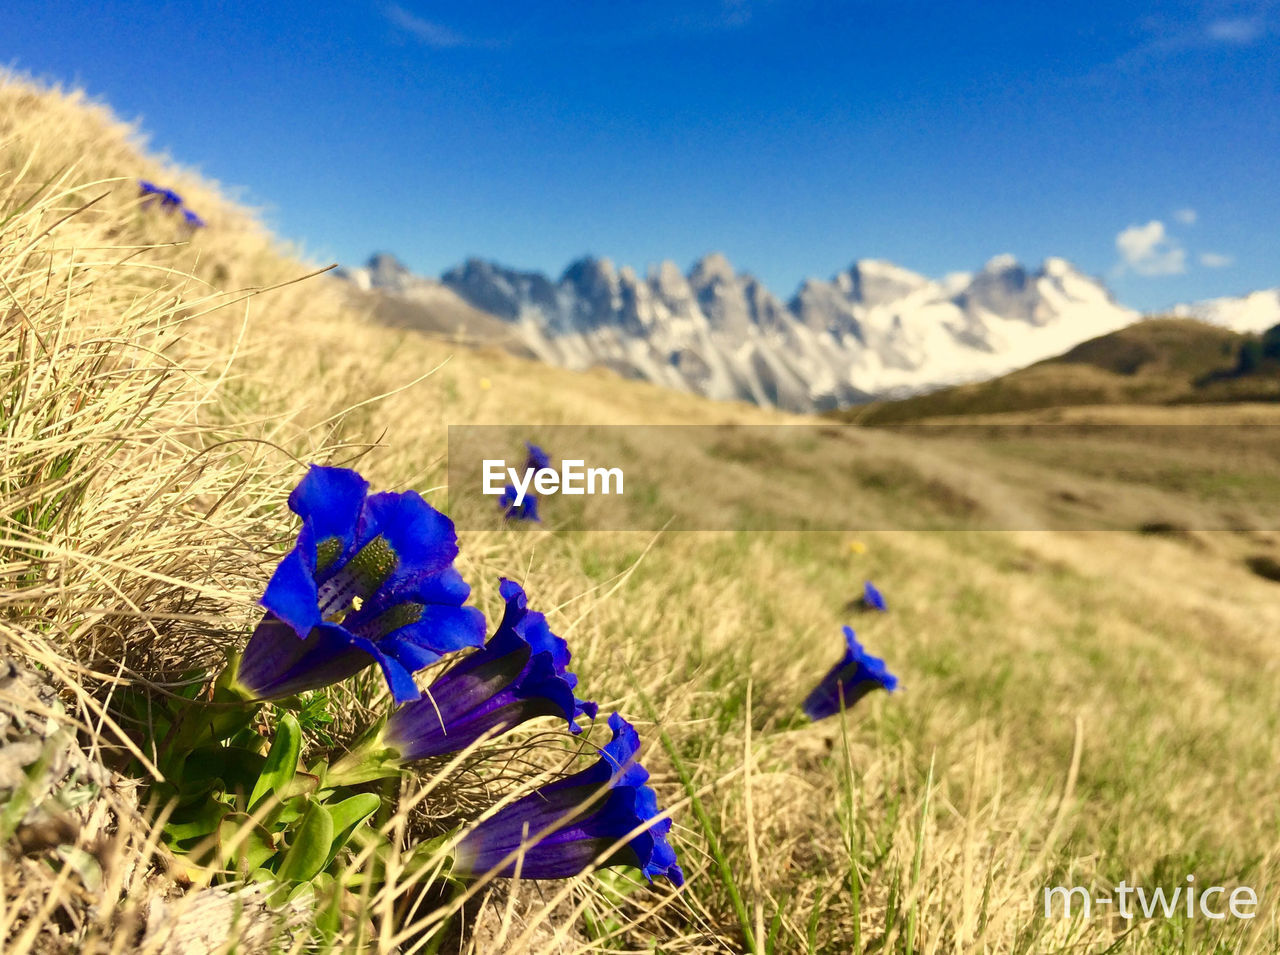 field, blue, nature, beauty in nature, real people, grass, day, landscape, growth, tranquility, tranquil scene, mountain, two people, outdoors, agriculture, men, scenics, women, rural scene, togetherness, flower, sky, mammal, people